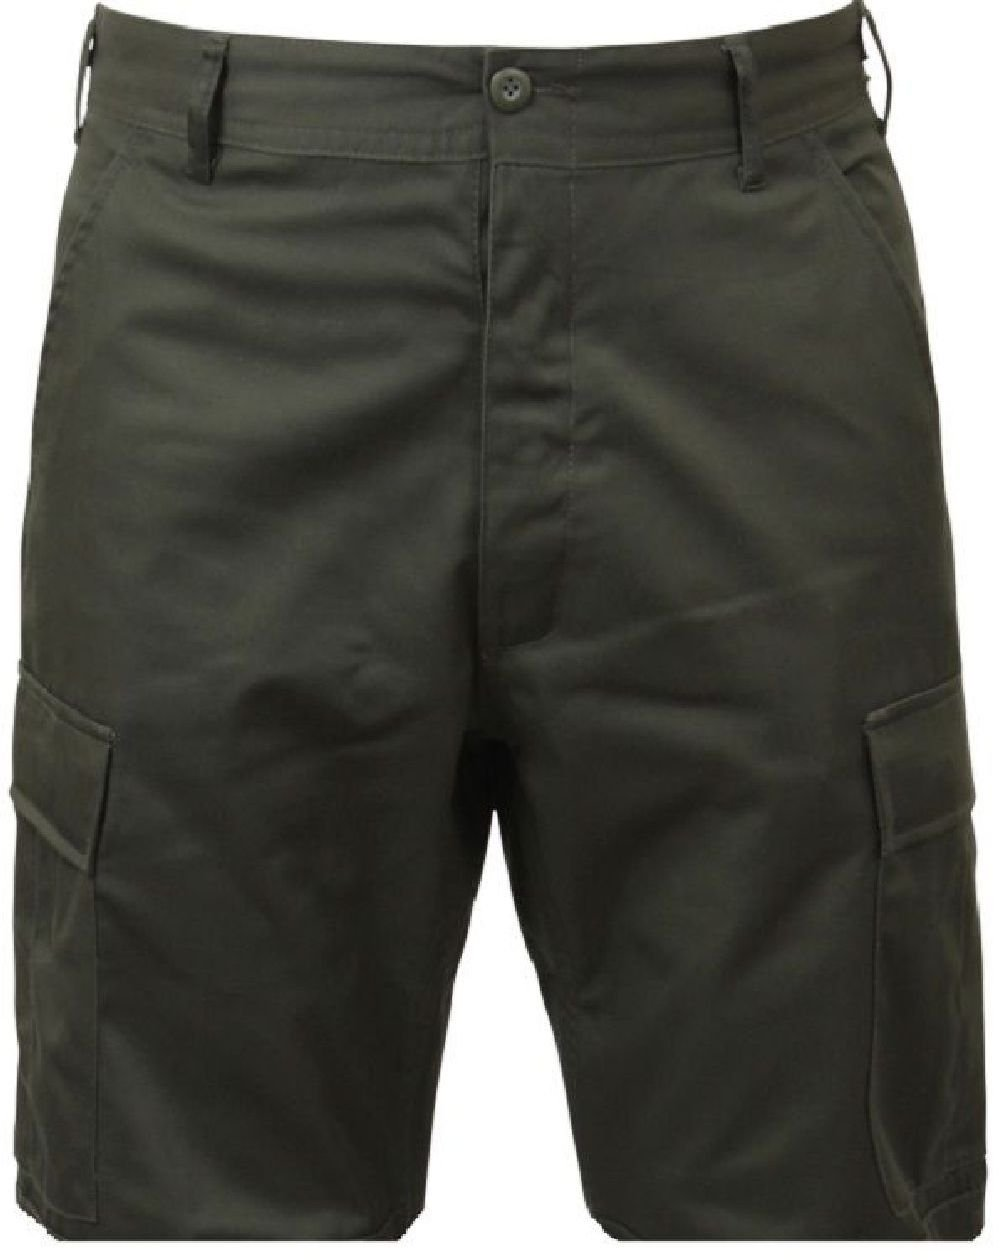 Bellawjace Clothing OD Green Military BDU Combat Cargo Shorts Poly/Cotton